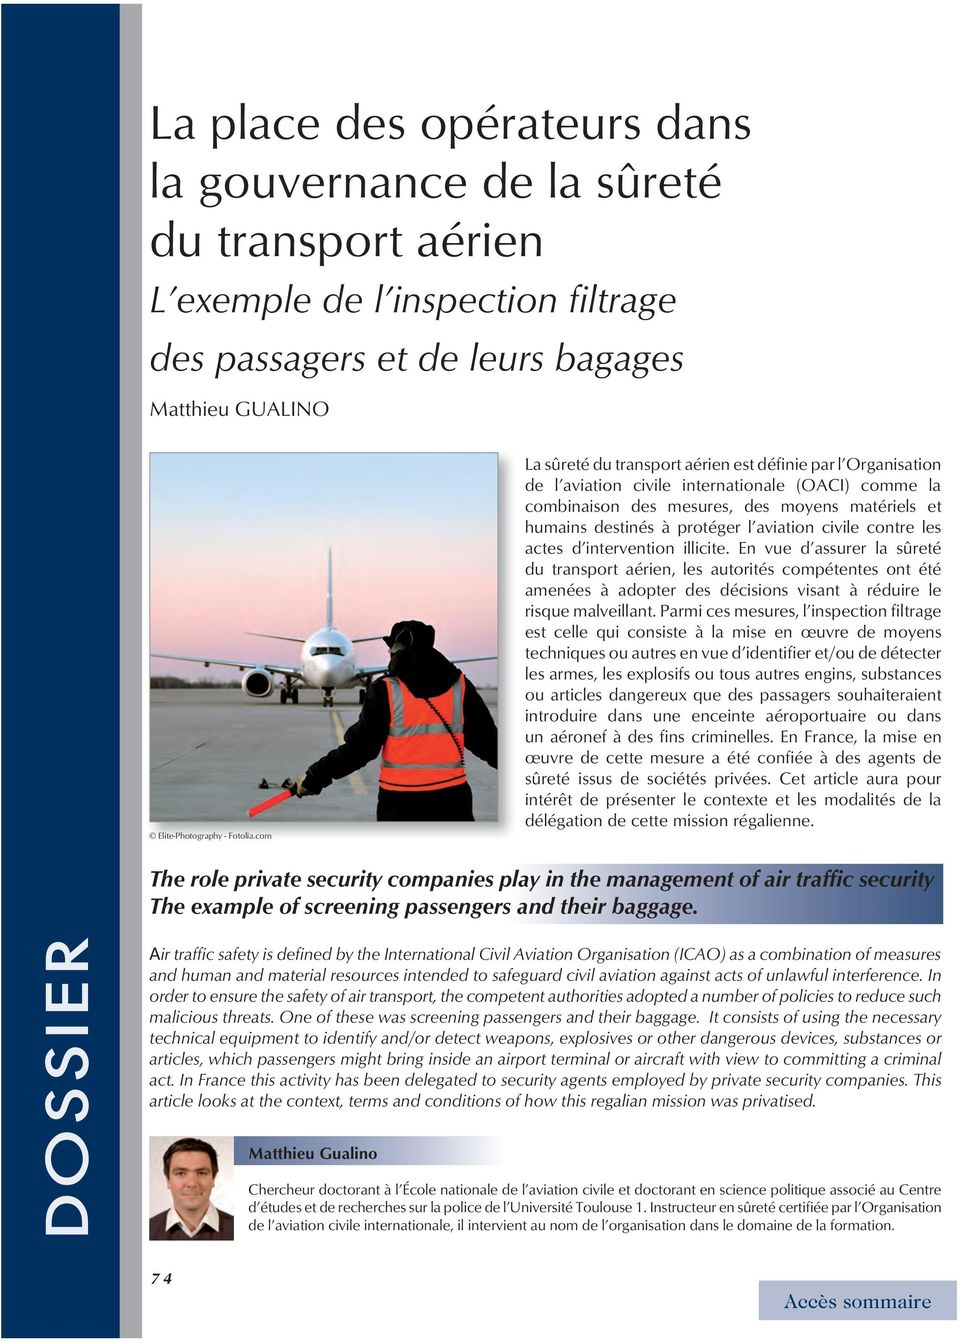 aviation civile contre les actes d intervention illicite.